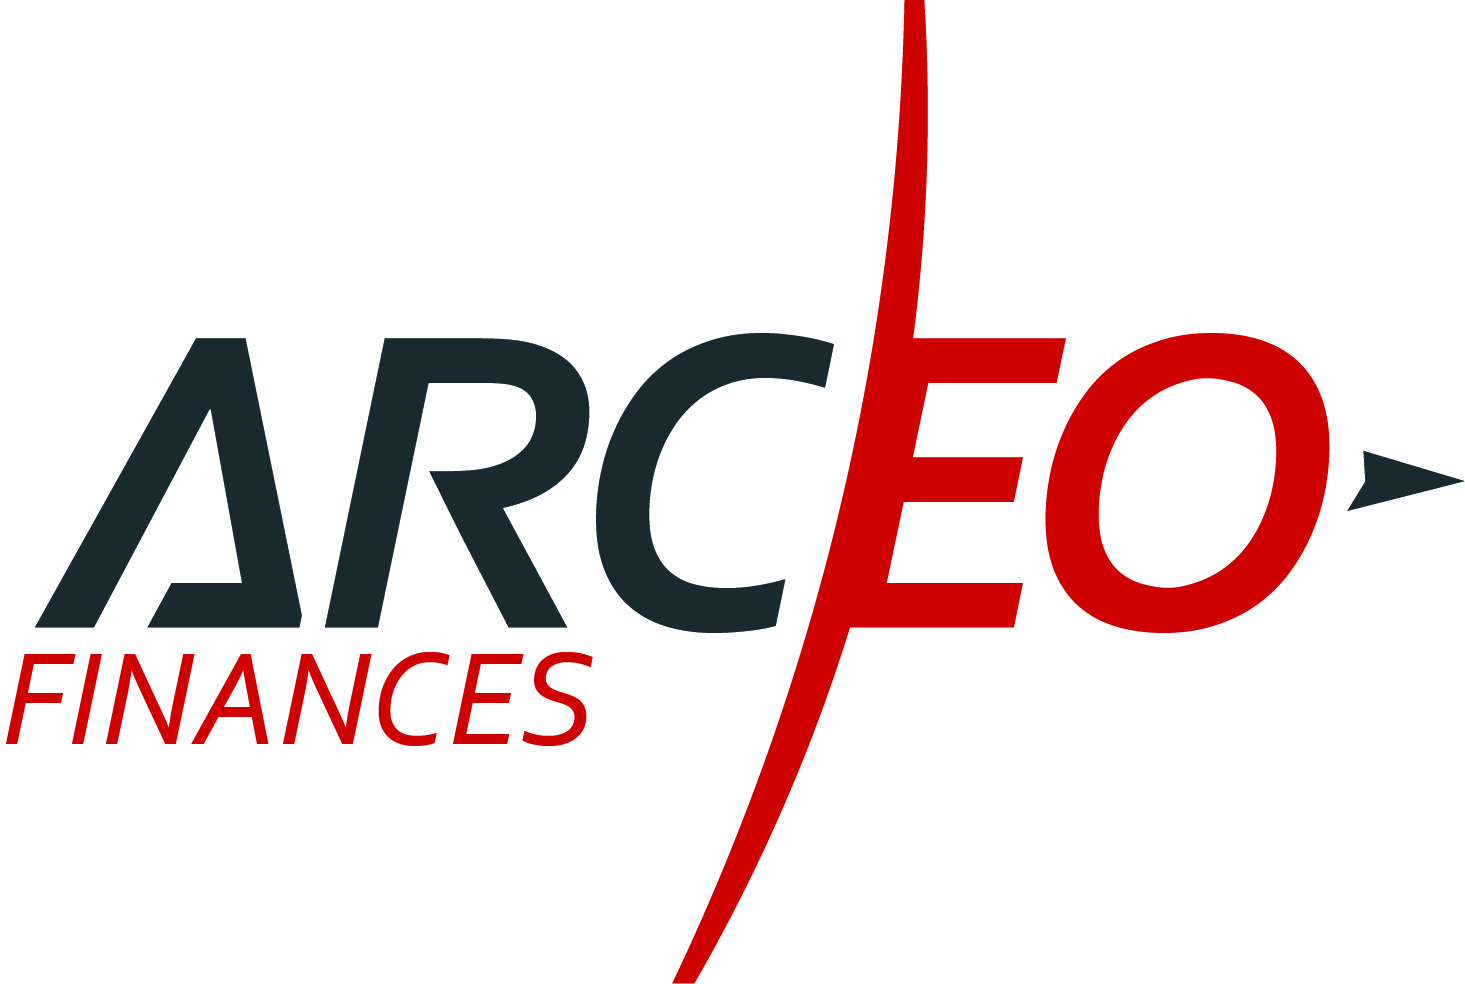 Arceo Finances